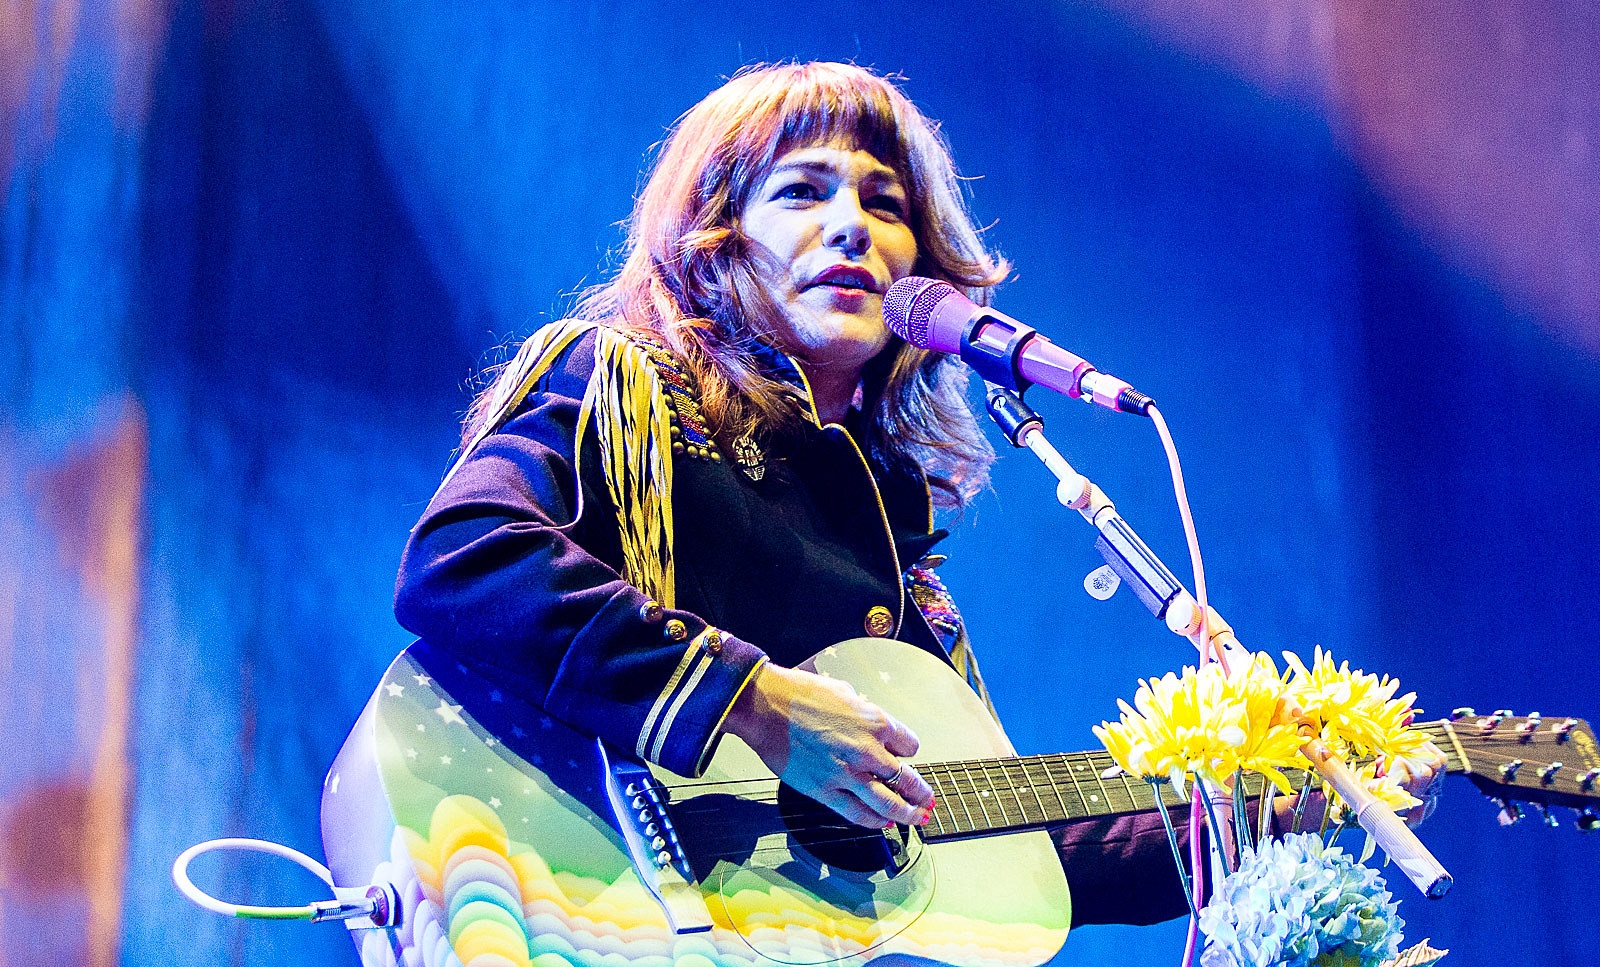 Jenny Lewis at Madison Square Garden